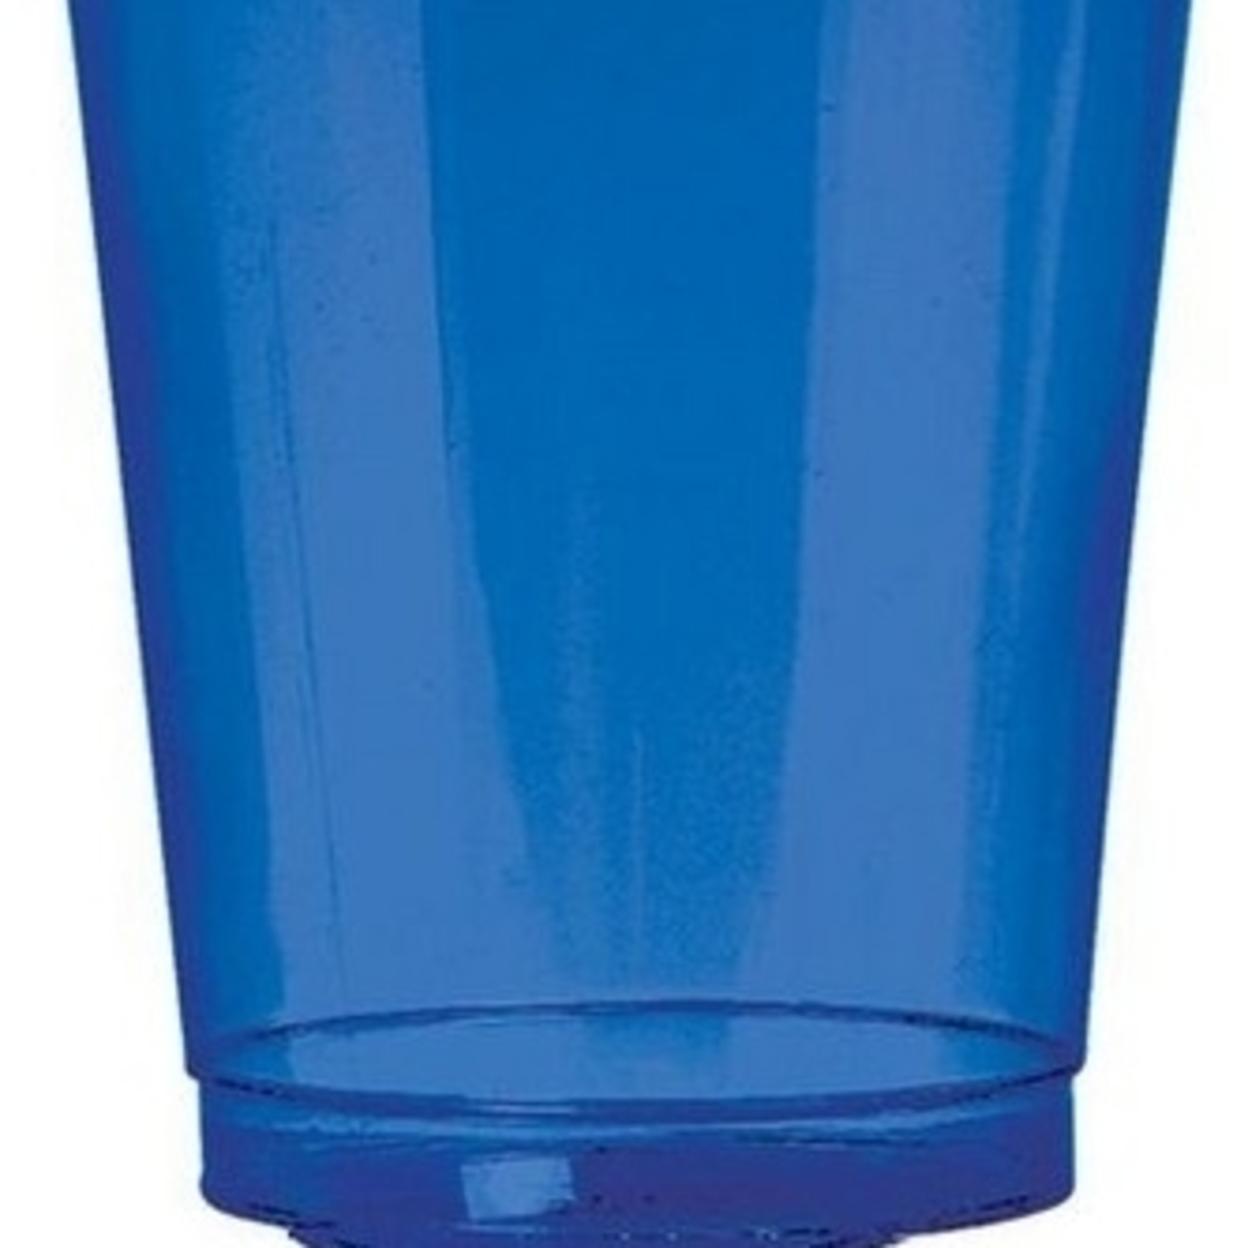 Amscan 350363.105 Tumbler Plastic 10 oz. Big Party Packs - Bright Royal Blue - Pack of 432 5a39e90b2a00e45b4c76404f